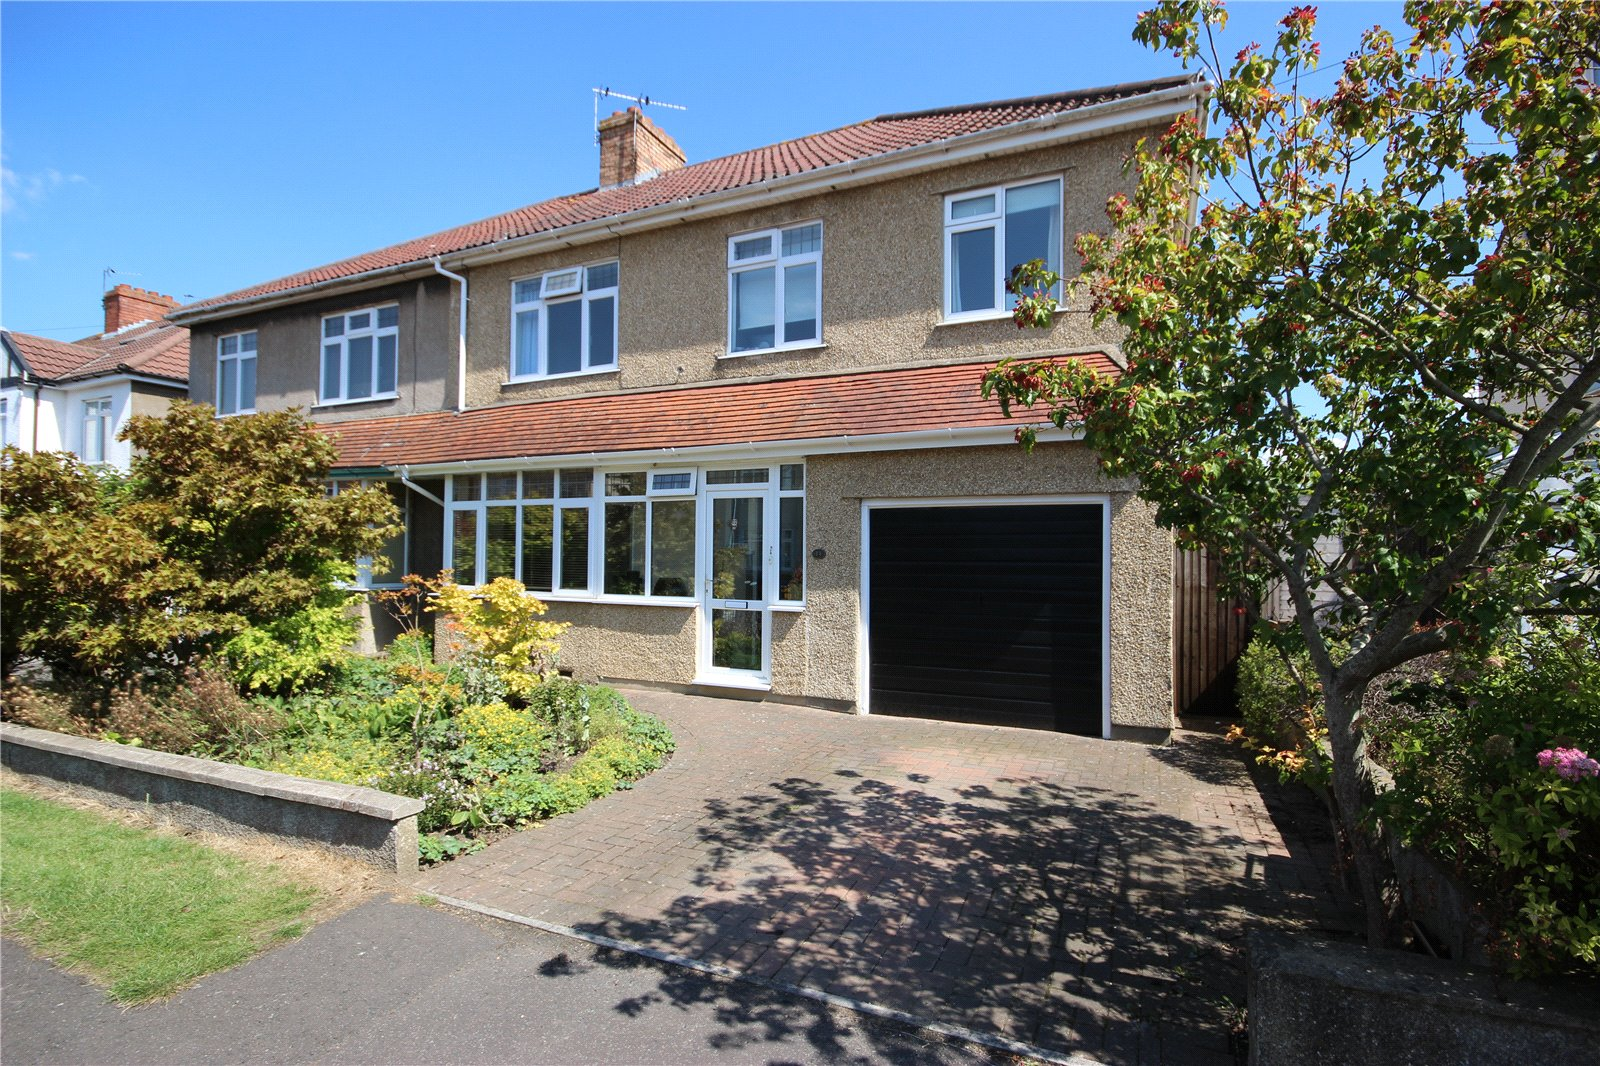 5 Bedrooms Semi Detached House for sale in Stadium Road Henleaze Bristol BS6